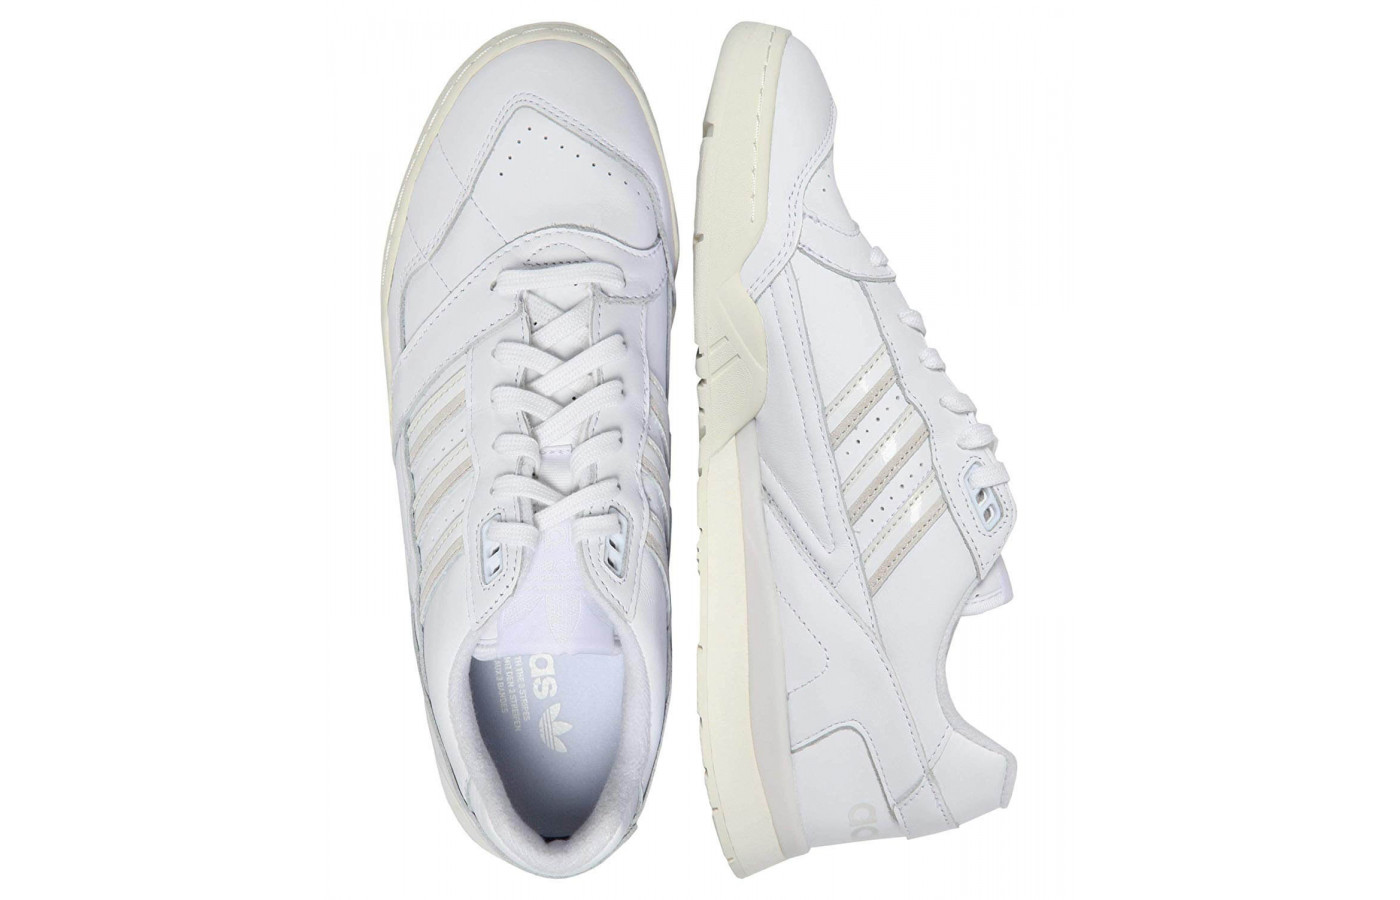 Adidas A.R Trainer Top and Medial